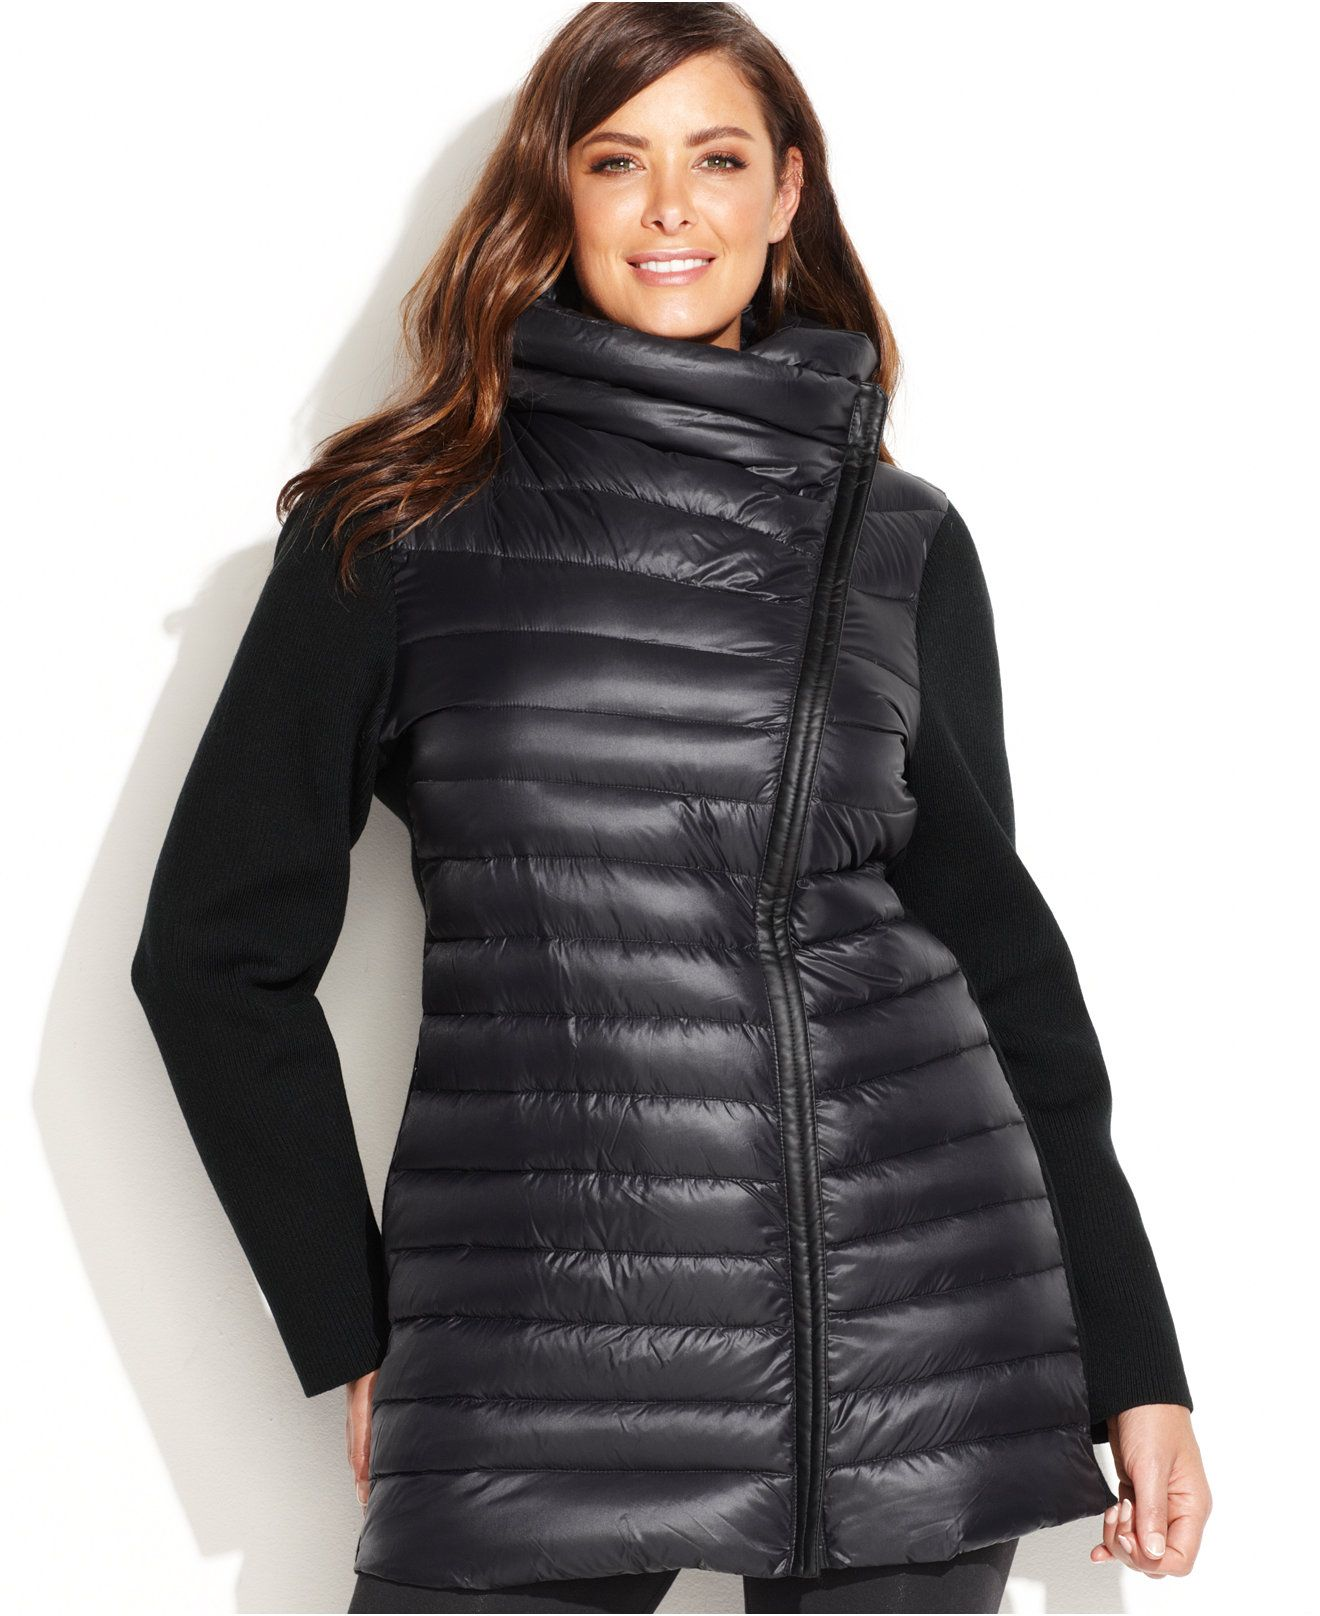 c7972d30a76 Calvin Klein Performance Plus Size Asymmetrical Puffer Jacket - Activewear  - Plus Sizes - Macy s